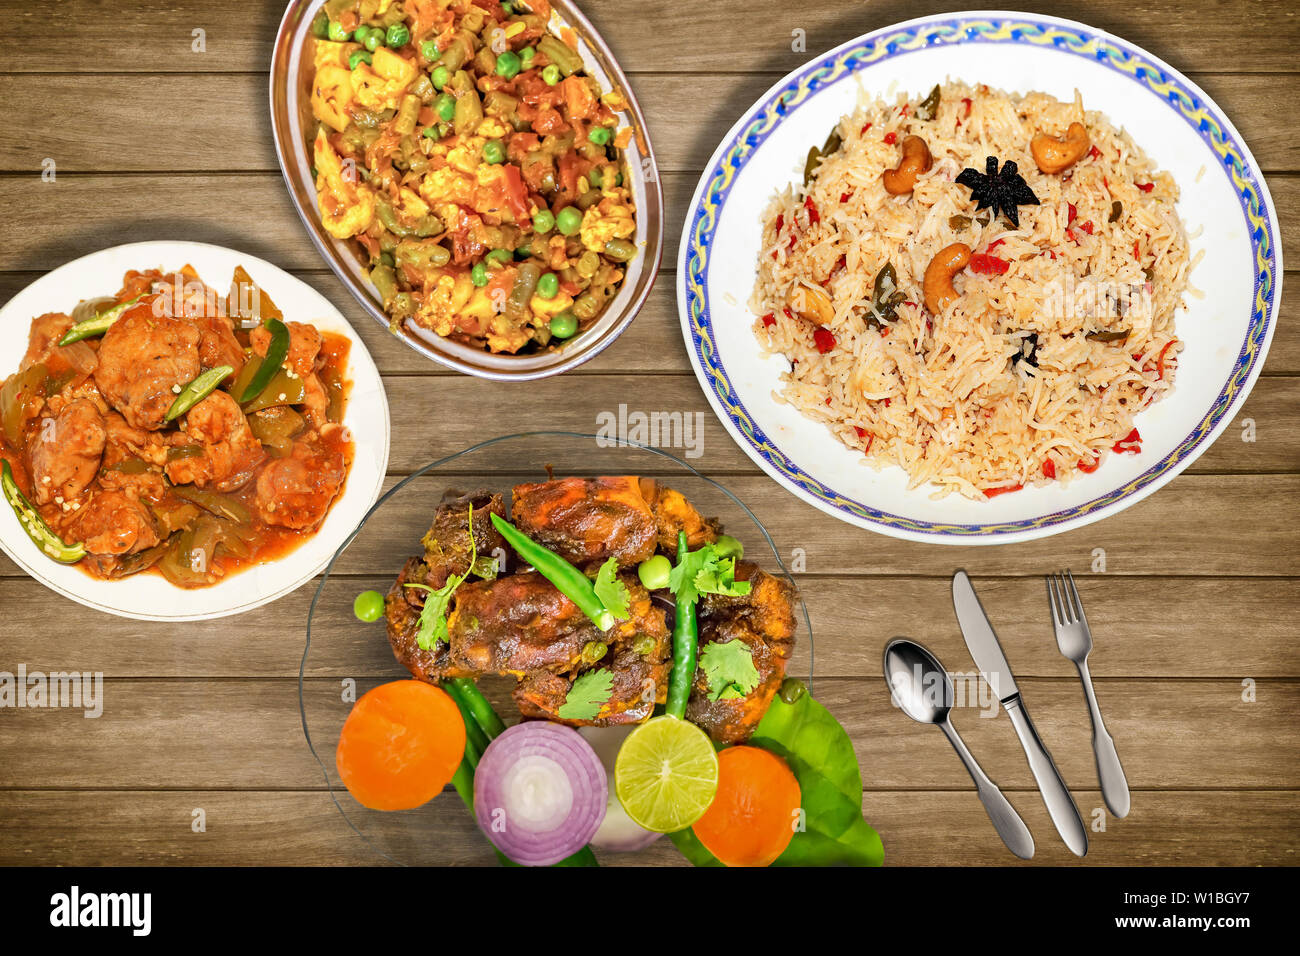 Tasty Indian food meal of fried rice with mixed vegetables along with red hot spicy lobster dish garnished with salad and spicy chili chicken Stock Photo